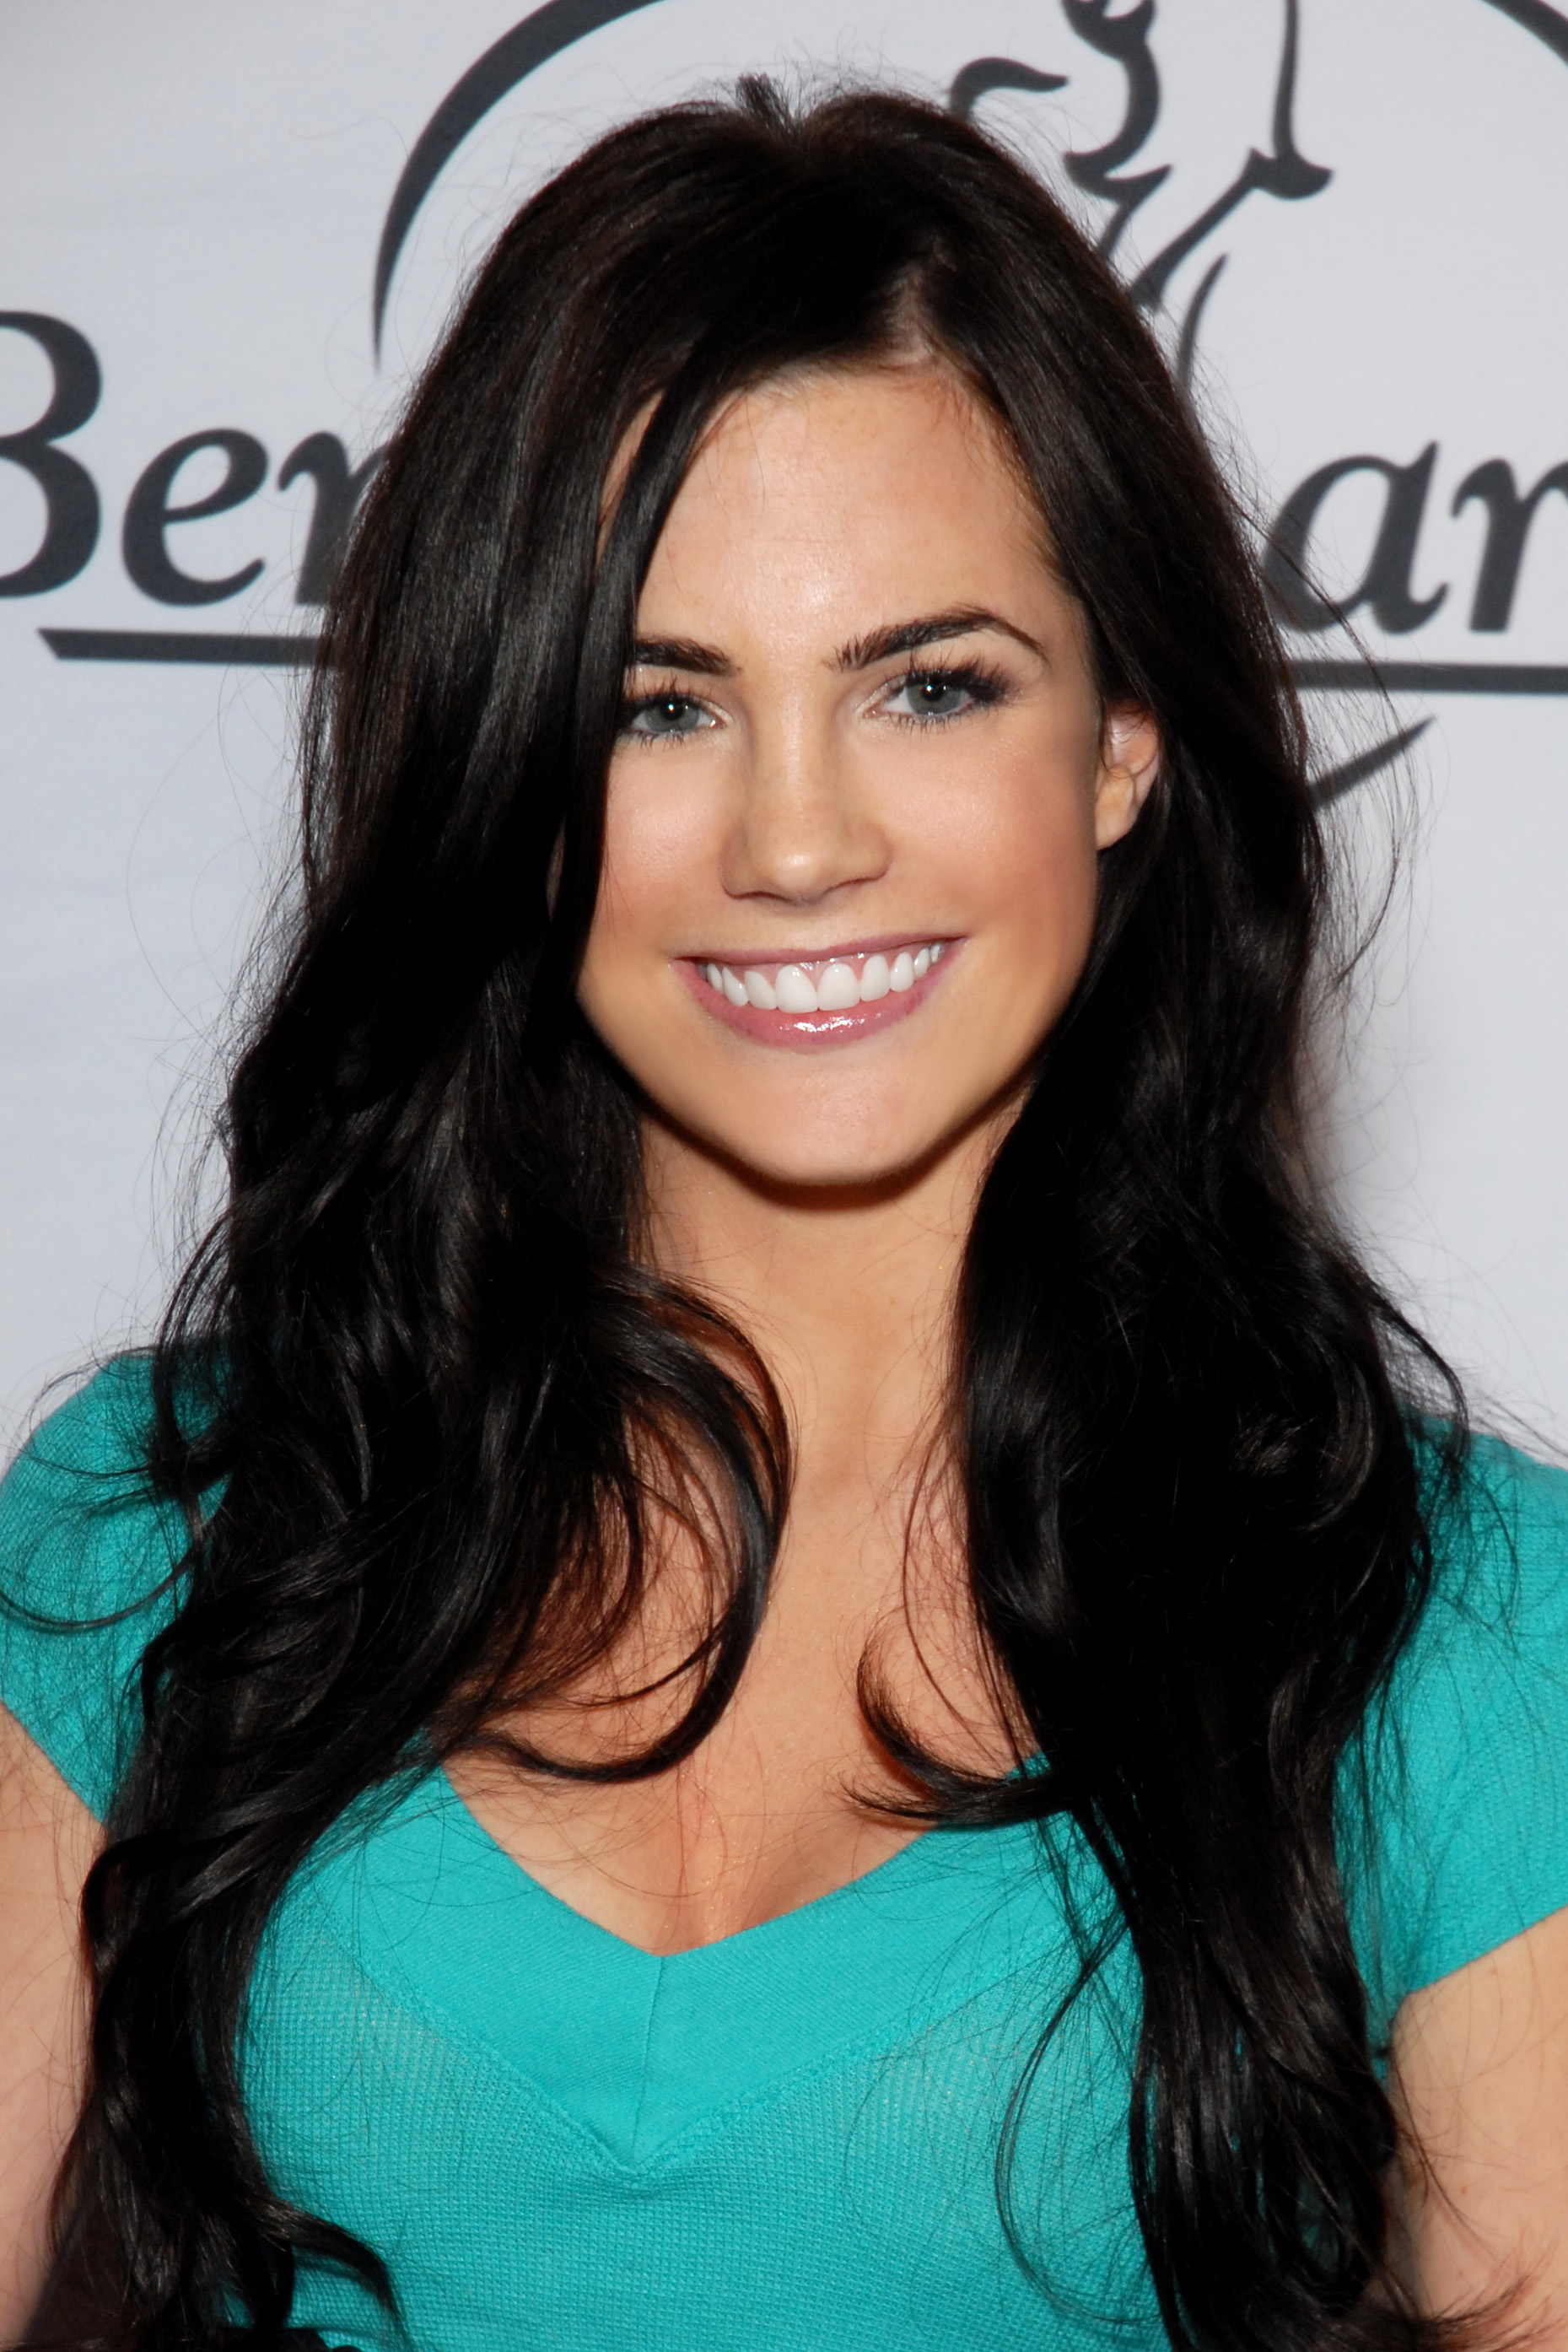 The 34-year old daughter of father (?) and mother(?) Jillian Murray in 2018 photo. Jillian Murray earned a  million dollar salary - leaving the net worth at 2 million in 2018